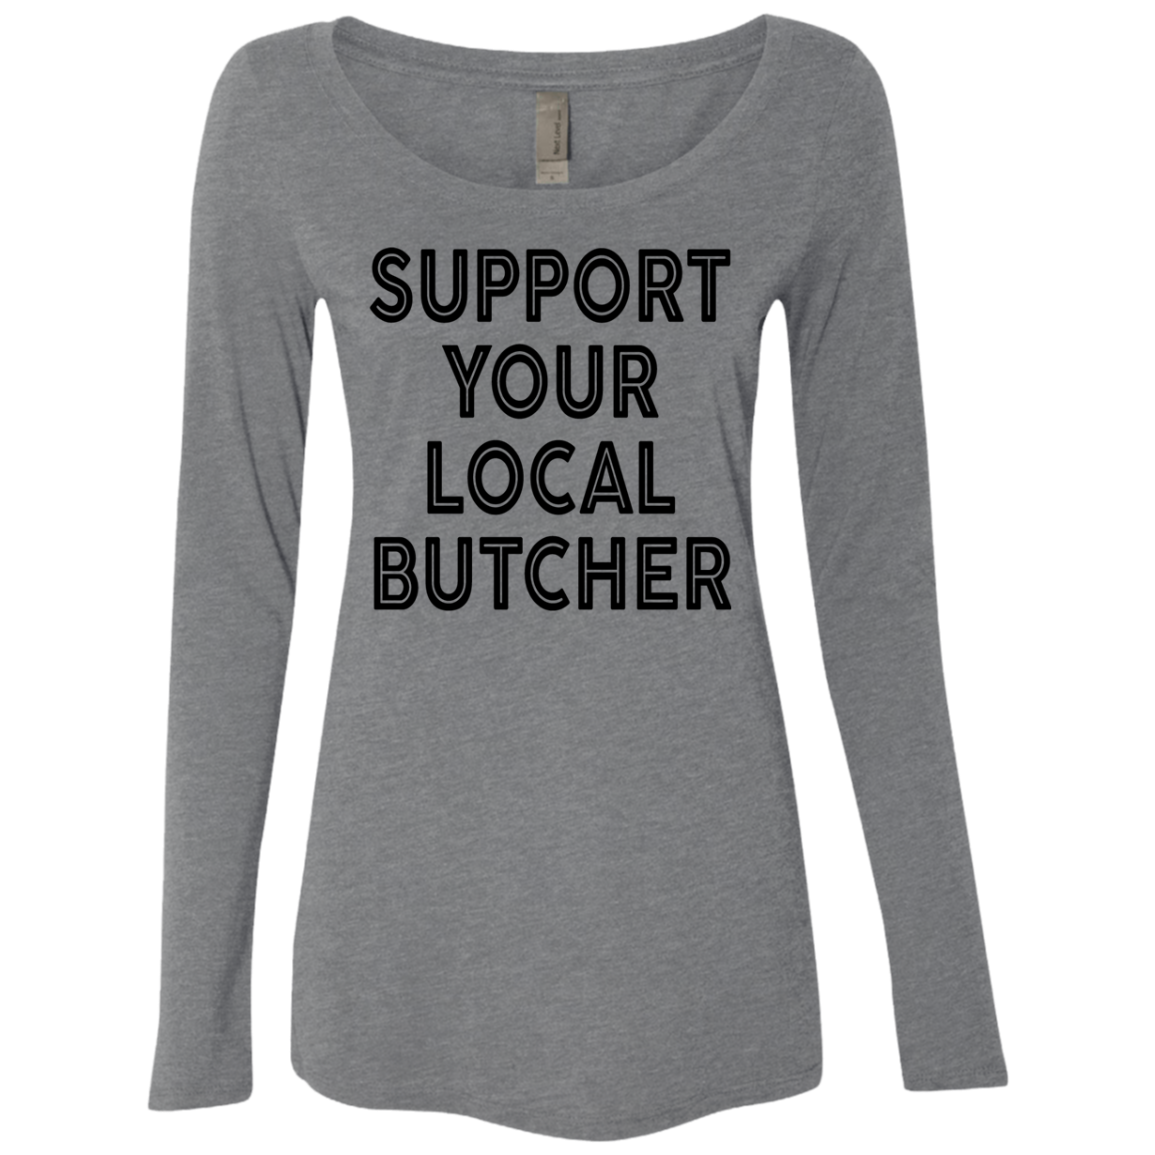 Support Your Local Butcher Women's Long Sleeve Tee